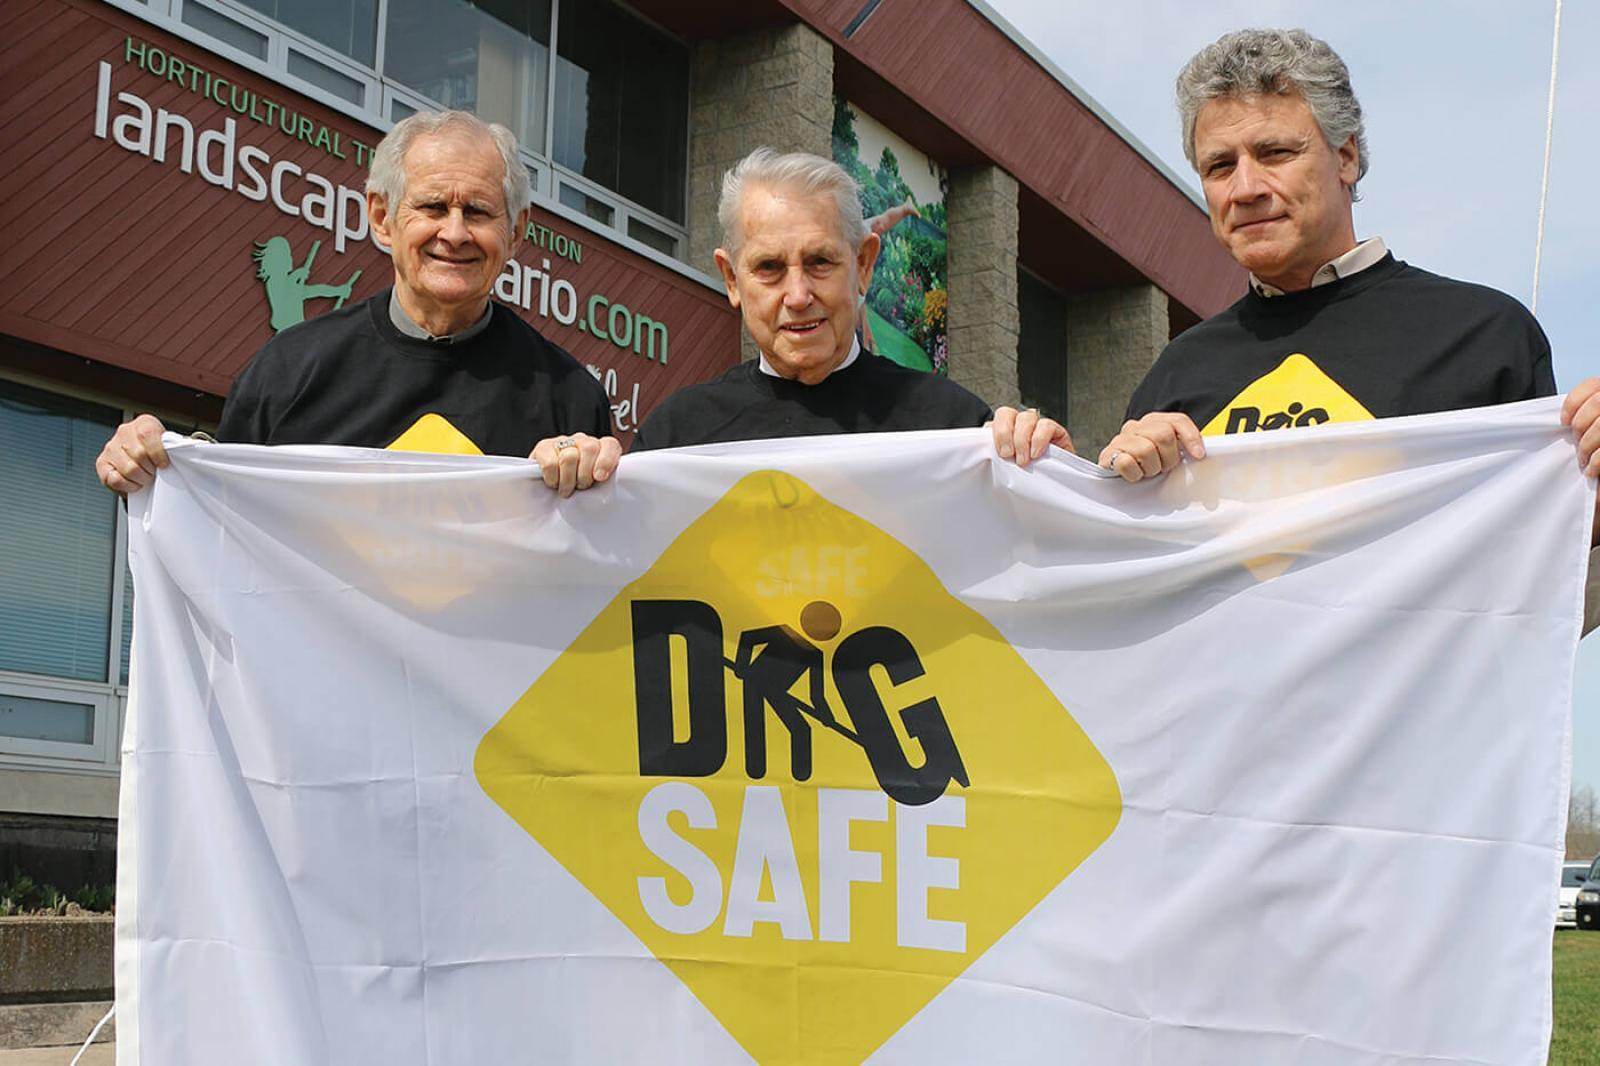 (L-R) Terry Murphy, Milton Mayor Gord Krantz and ORCGA president Doug Lapp prepare to hoist the Dig Safe flag.